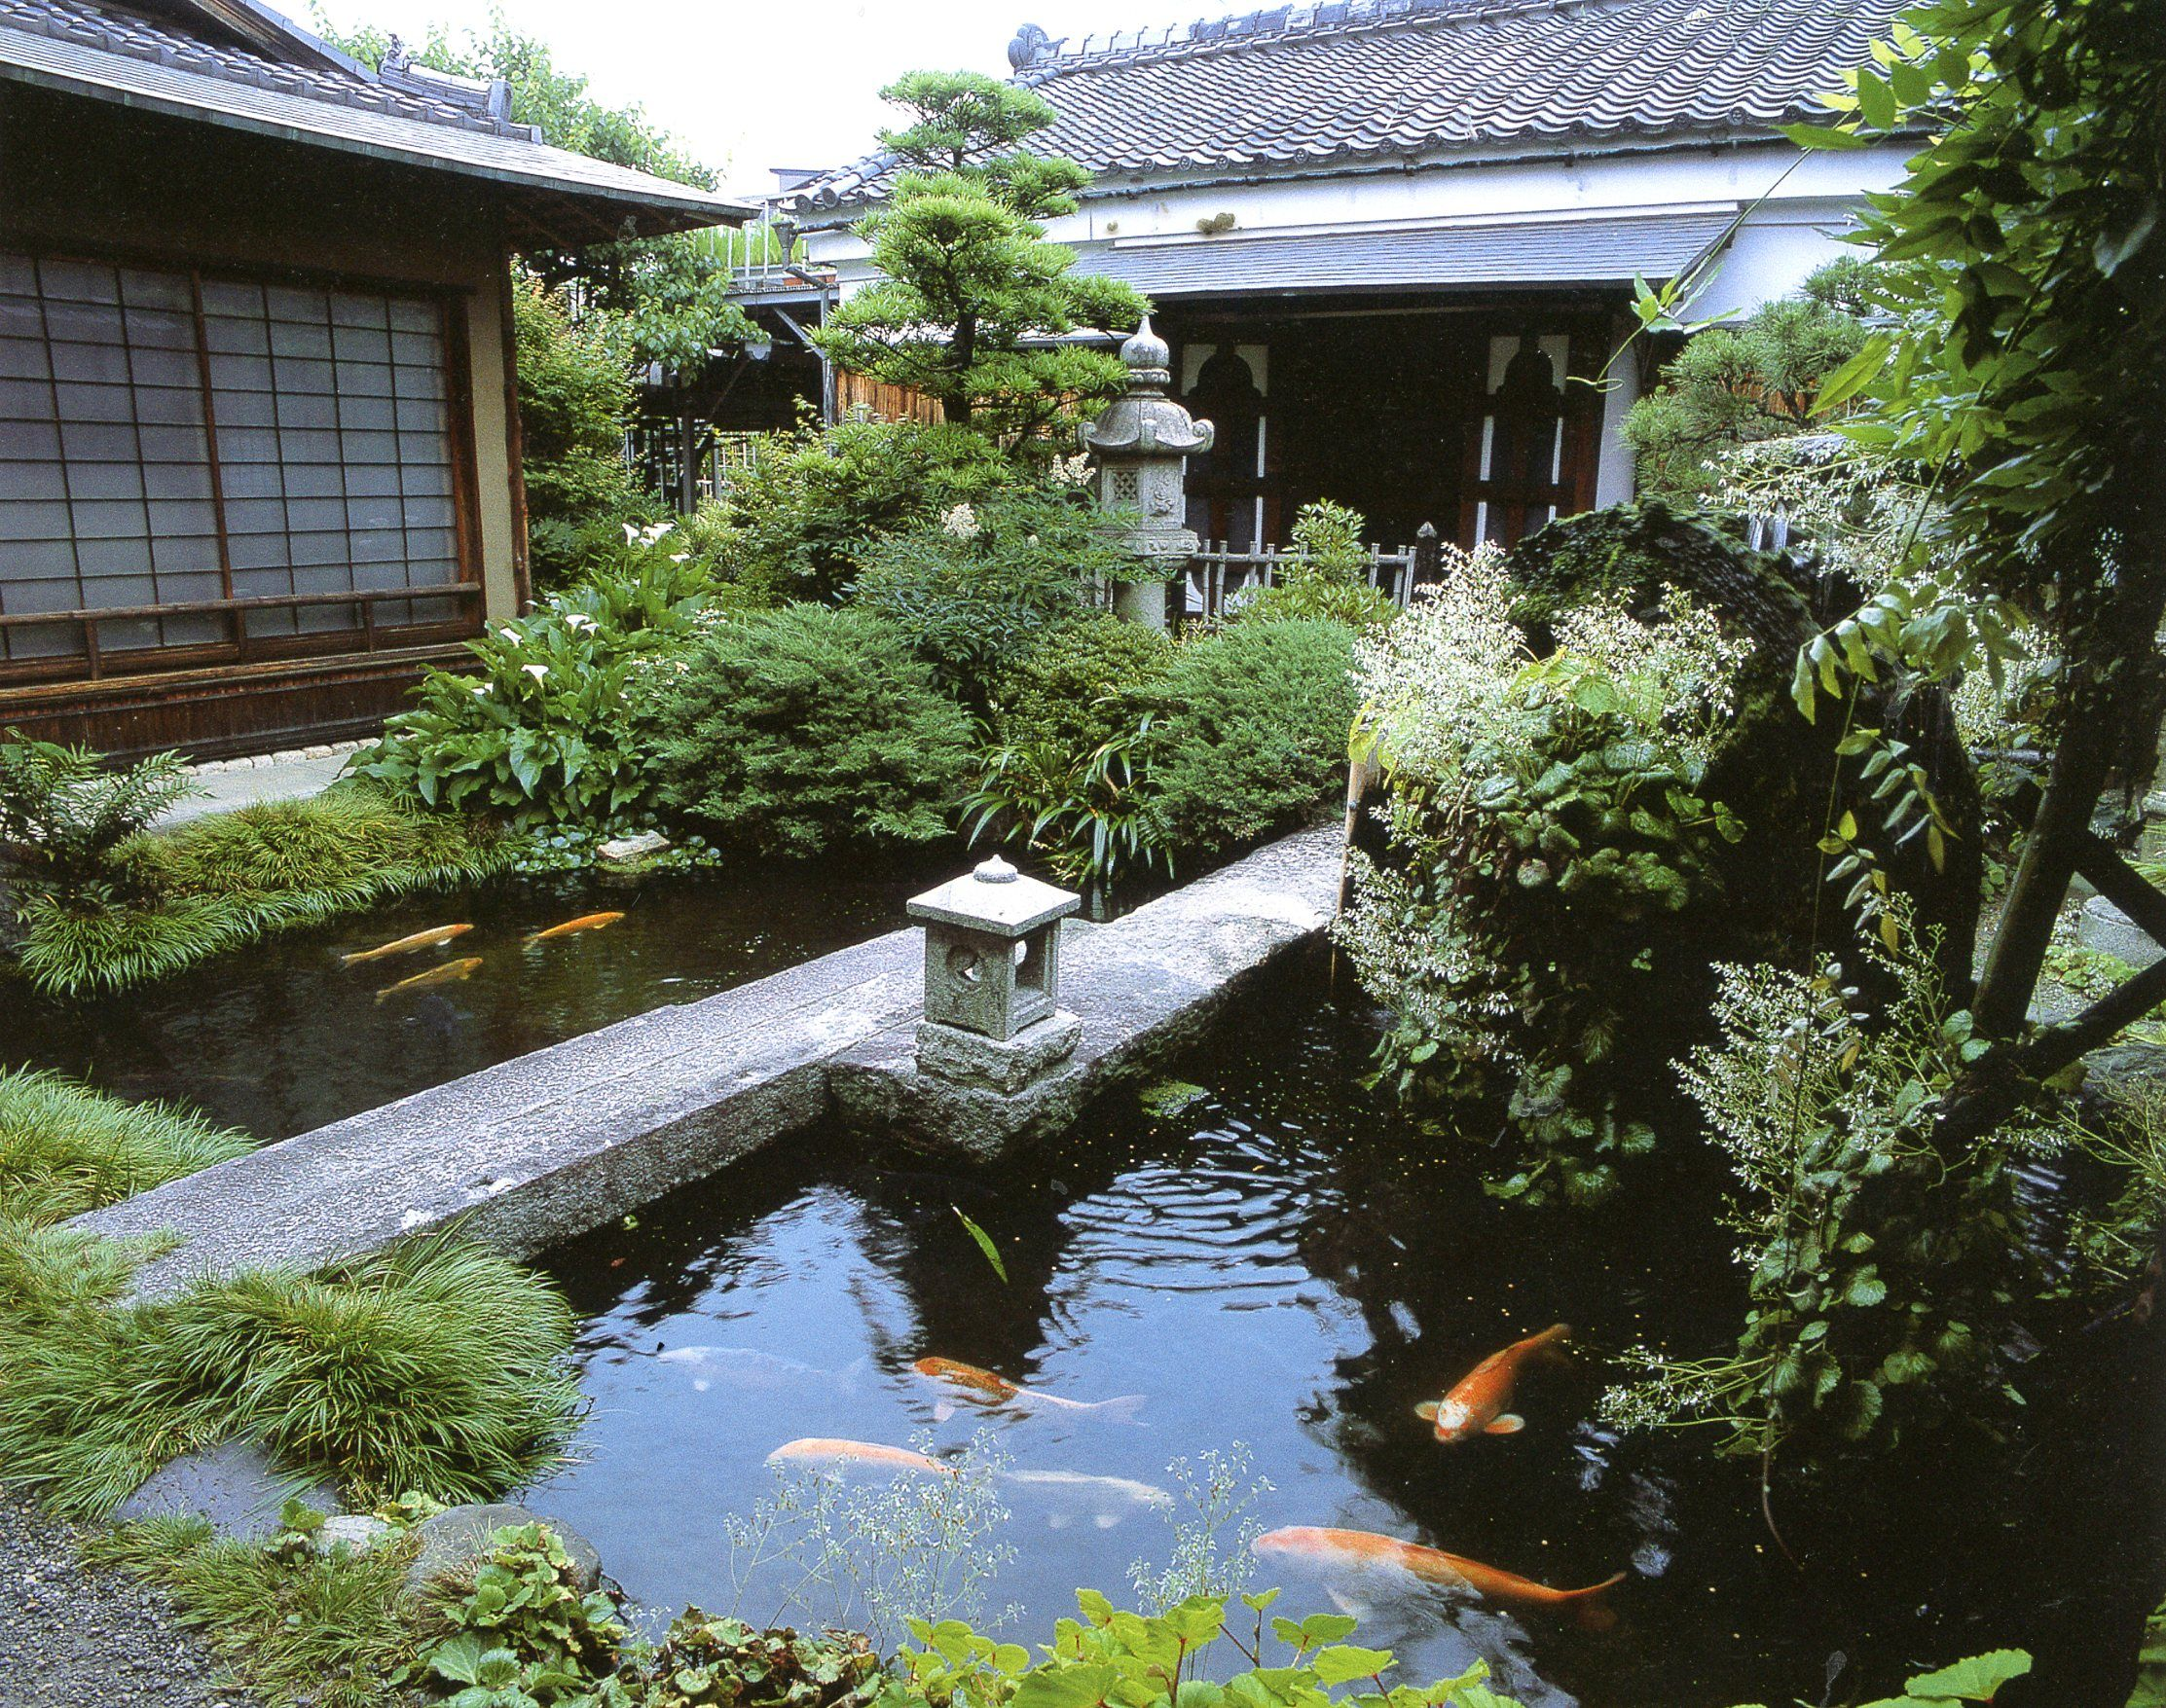 Yamanaka Oil Landscapes For Small Spaces Japanese Courtyard Gardens, By